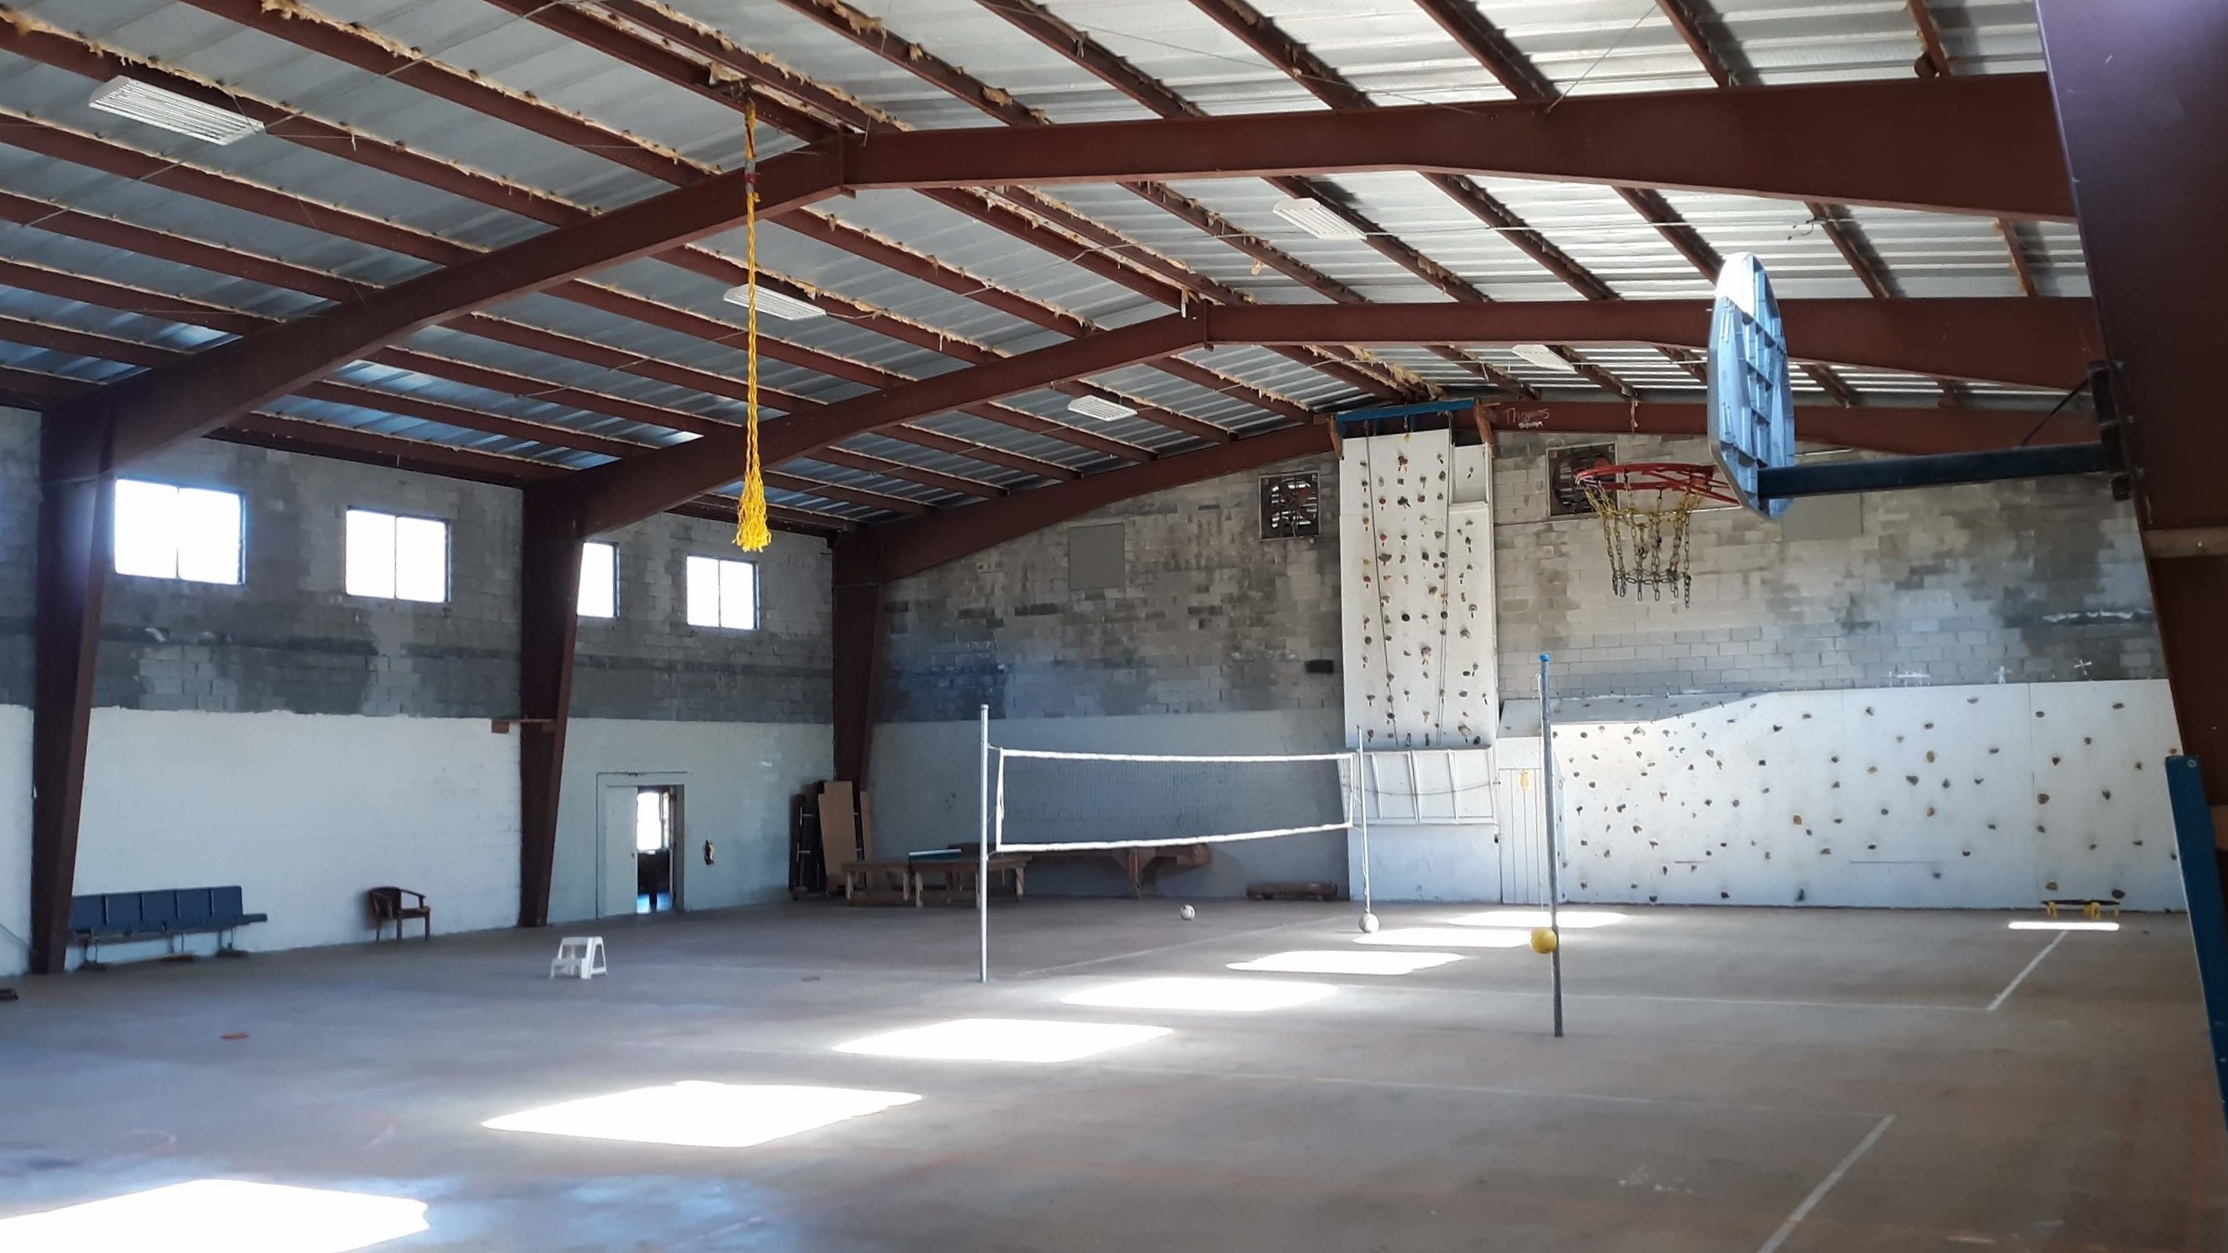 Gymnasium - Game Room - Playground Area with basketball, volleyball, climbing wall, table tennis, carpet pool, foosball, air hockey, 9 Square in the Air, Gaga Ball, Disc Golf, Fort and Slide.